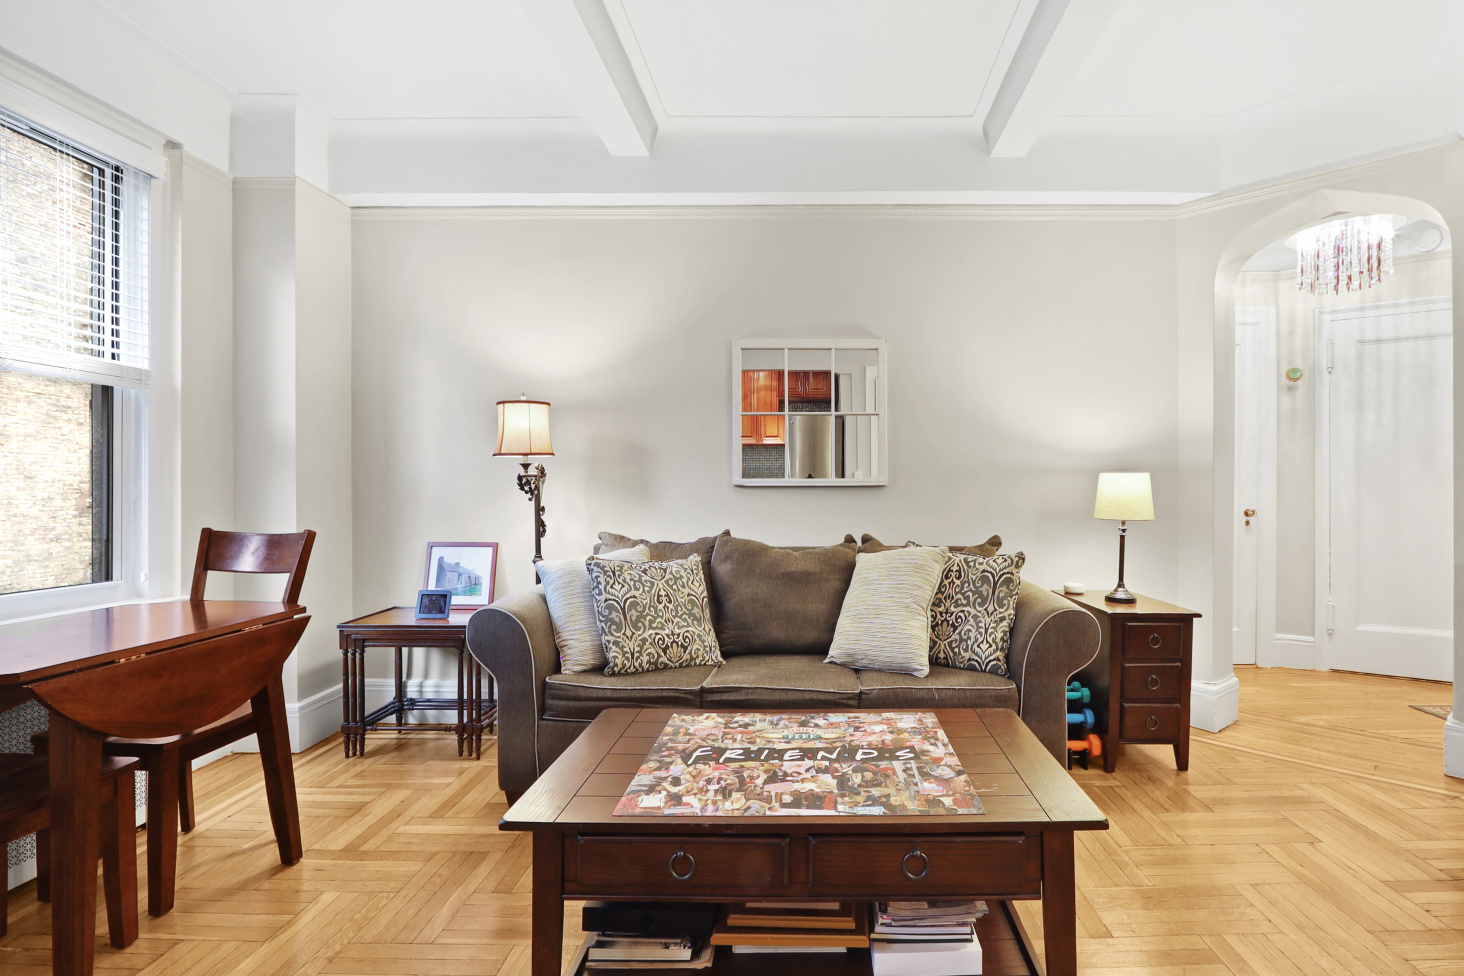 Apartment for sale at 315 West 86th Street, Apt 5-E